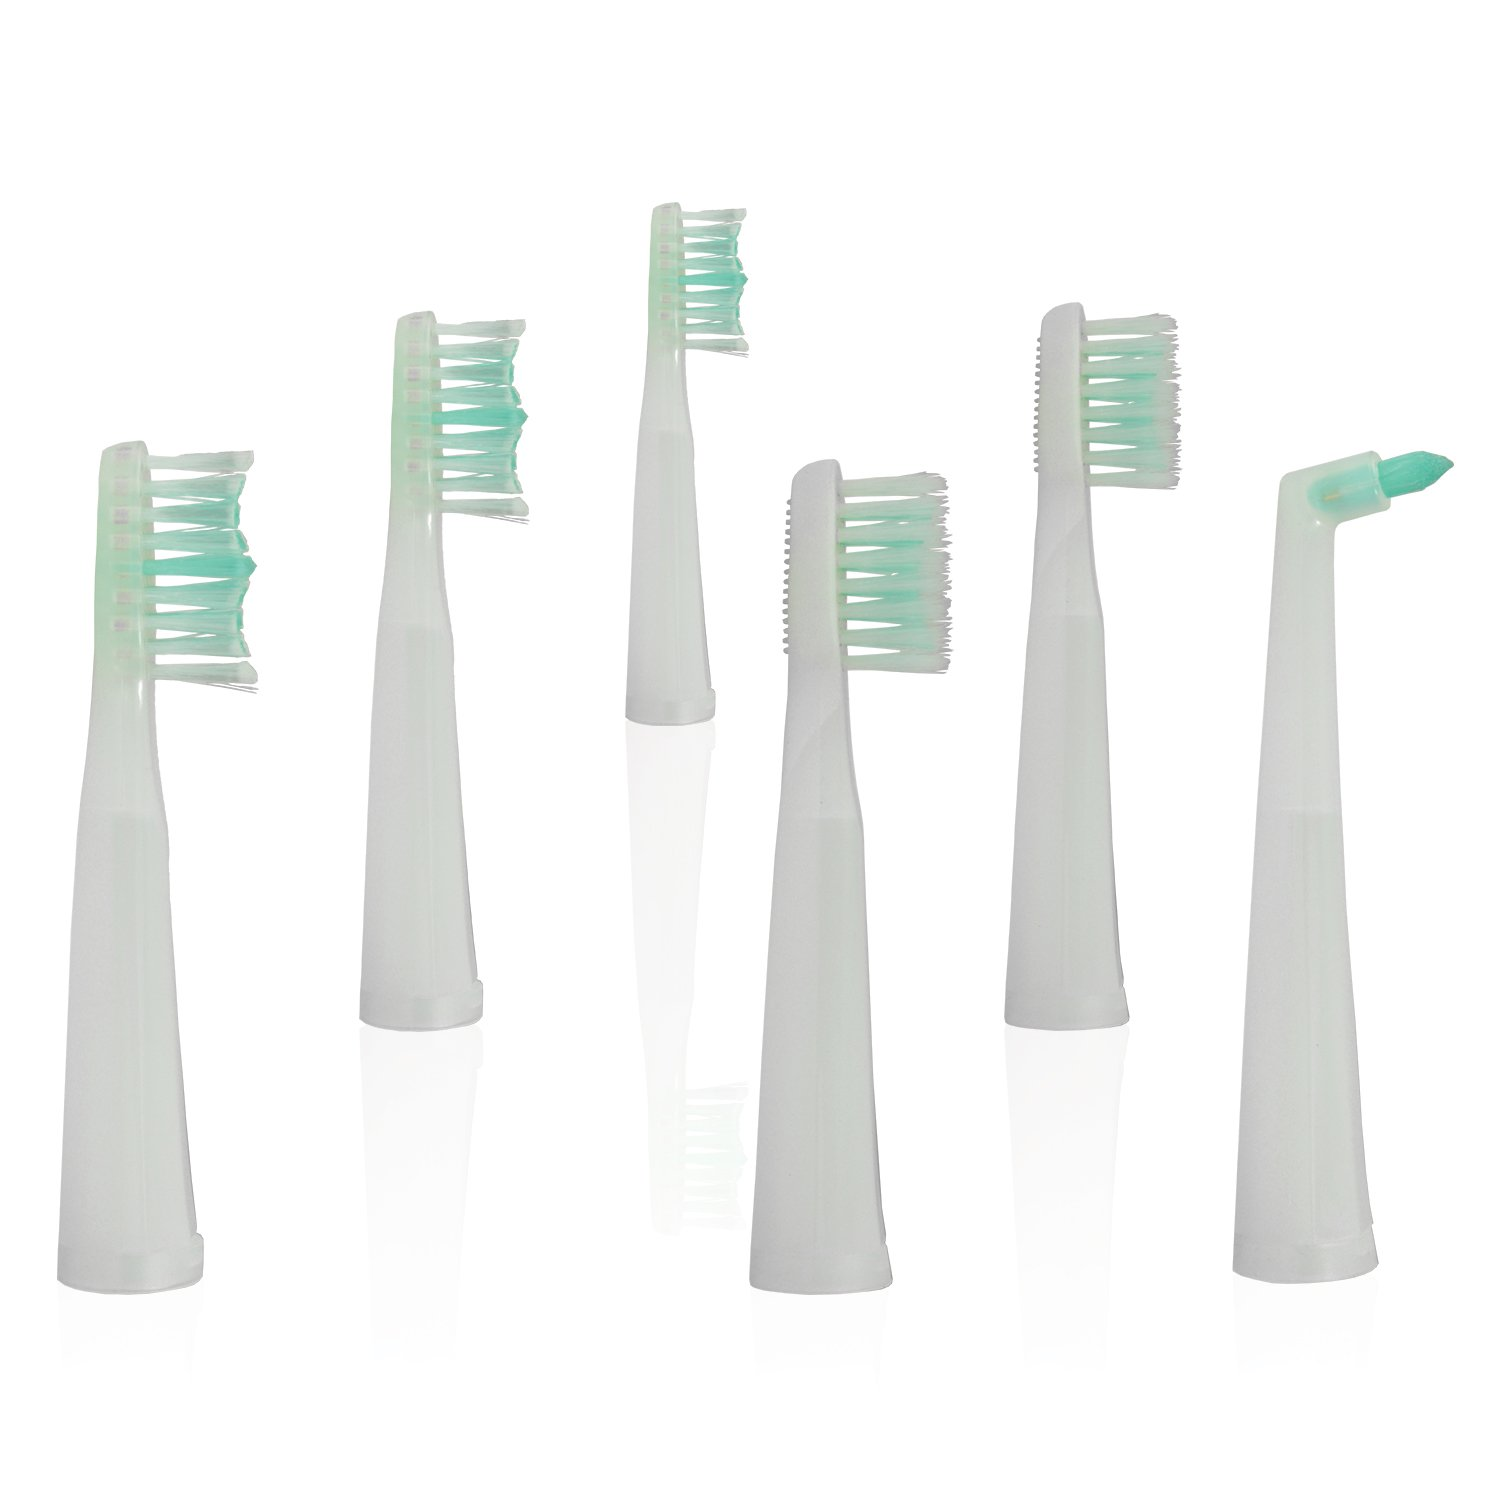 Sterline T80 Sonic Pulse Electric Rechargeable Toothbrush Replacement Heads, with 6 Brush Heads Replacements